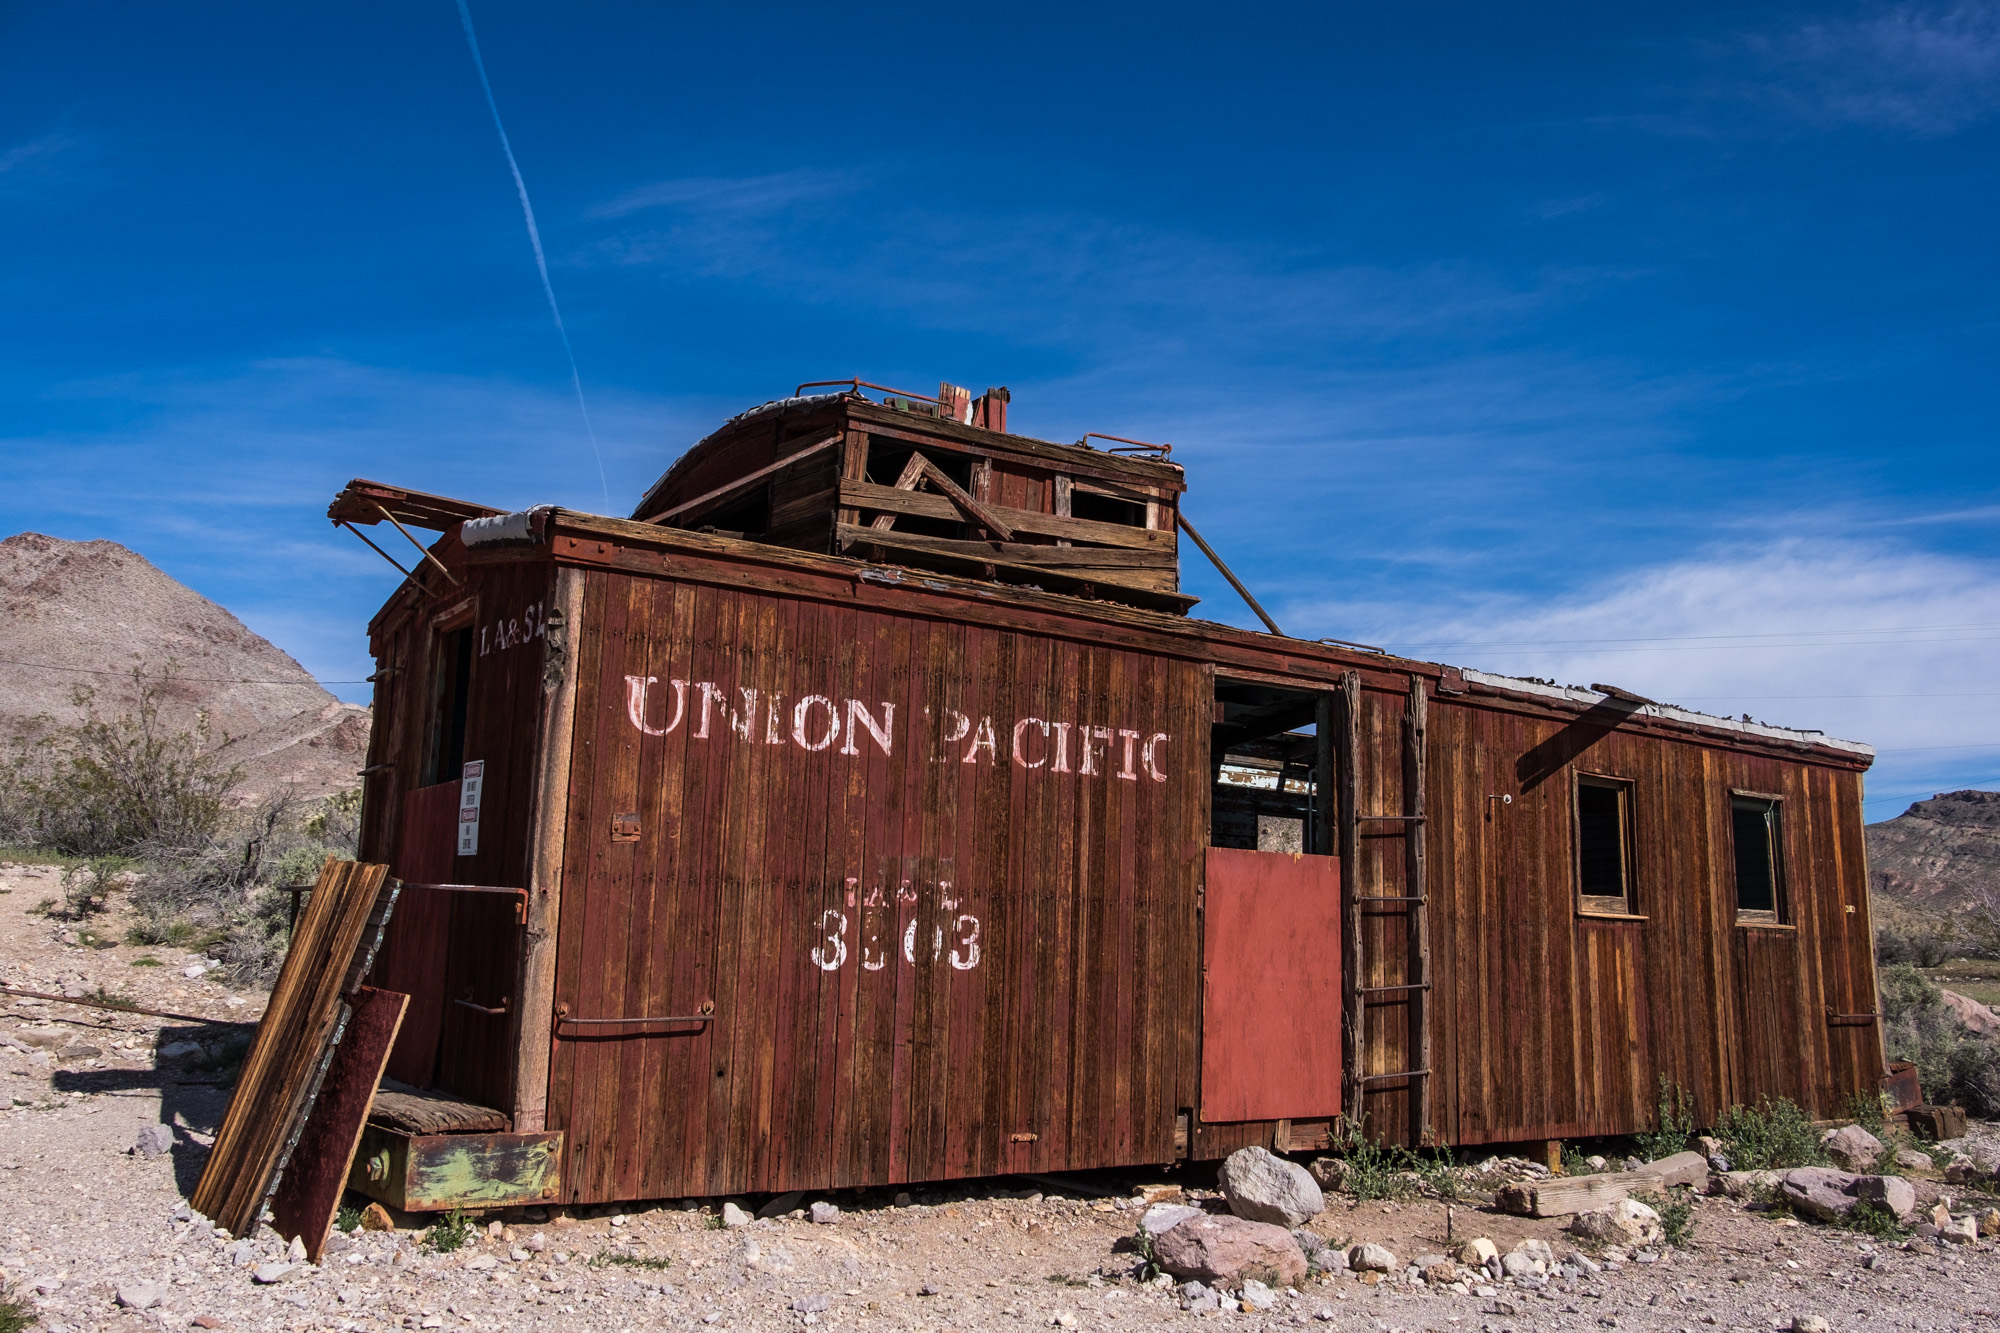 The old ghost town of Rhyolite in Nevada makes for an interesting visit.